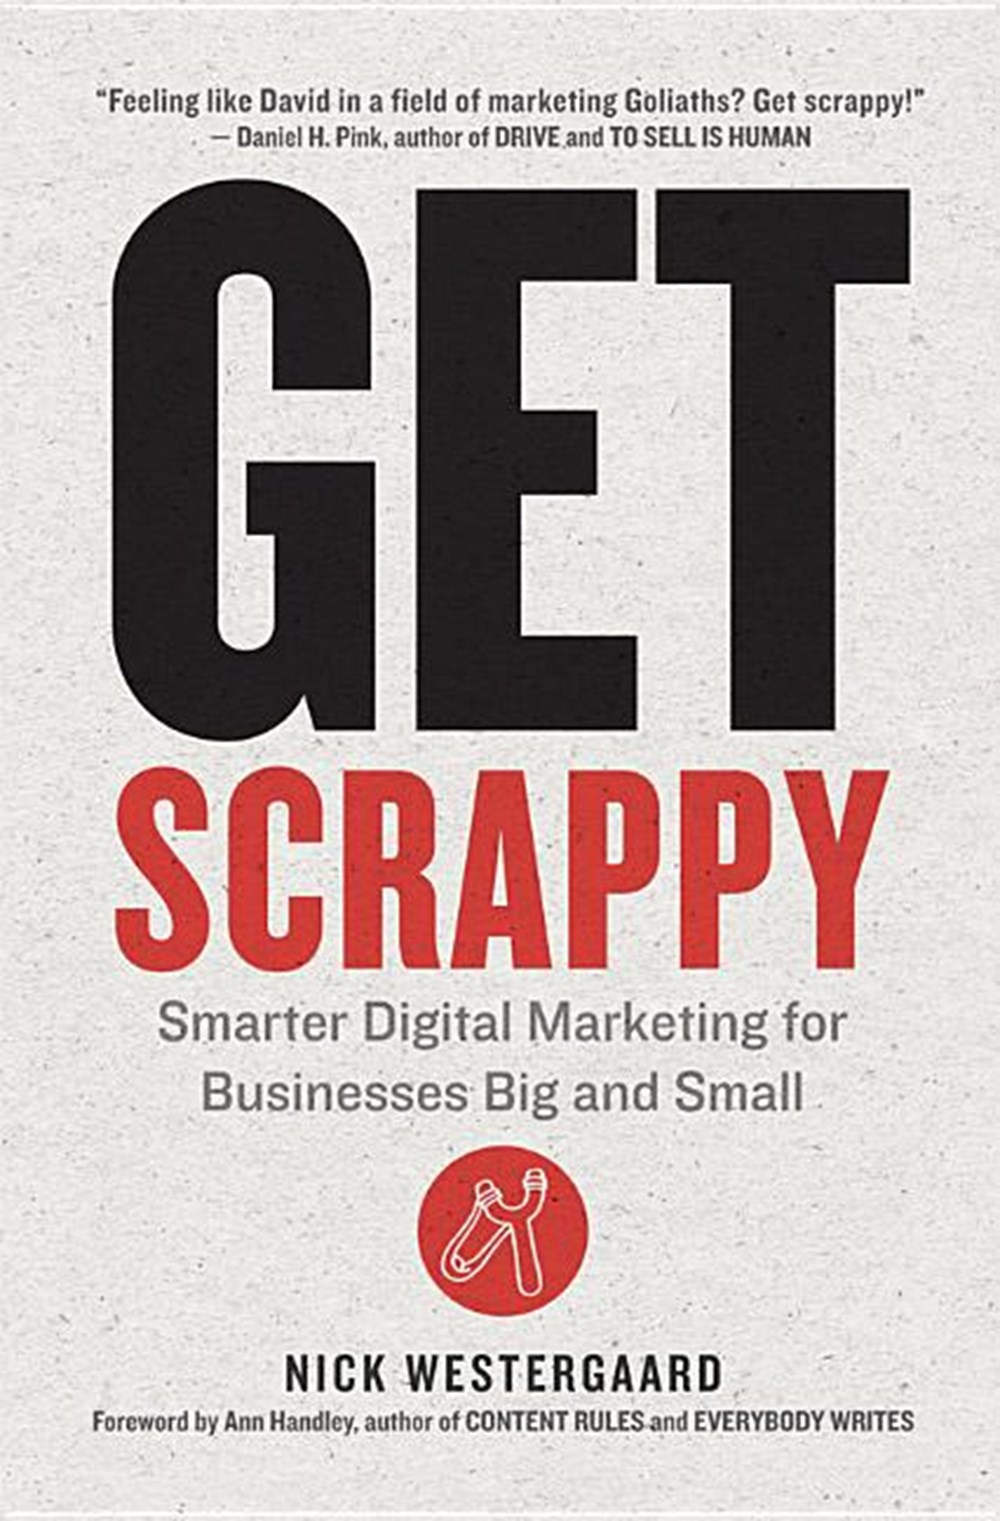 Get Scrappy Smarter Digital Marketing for Businesses Big and Small